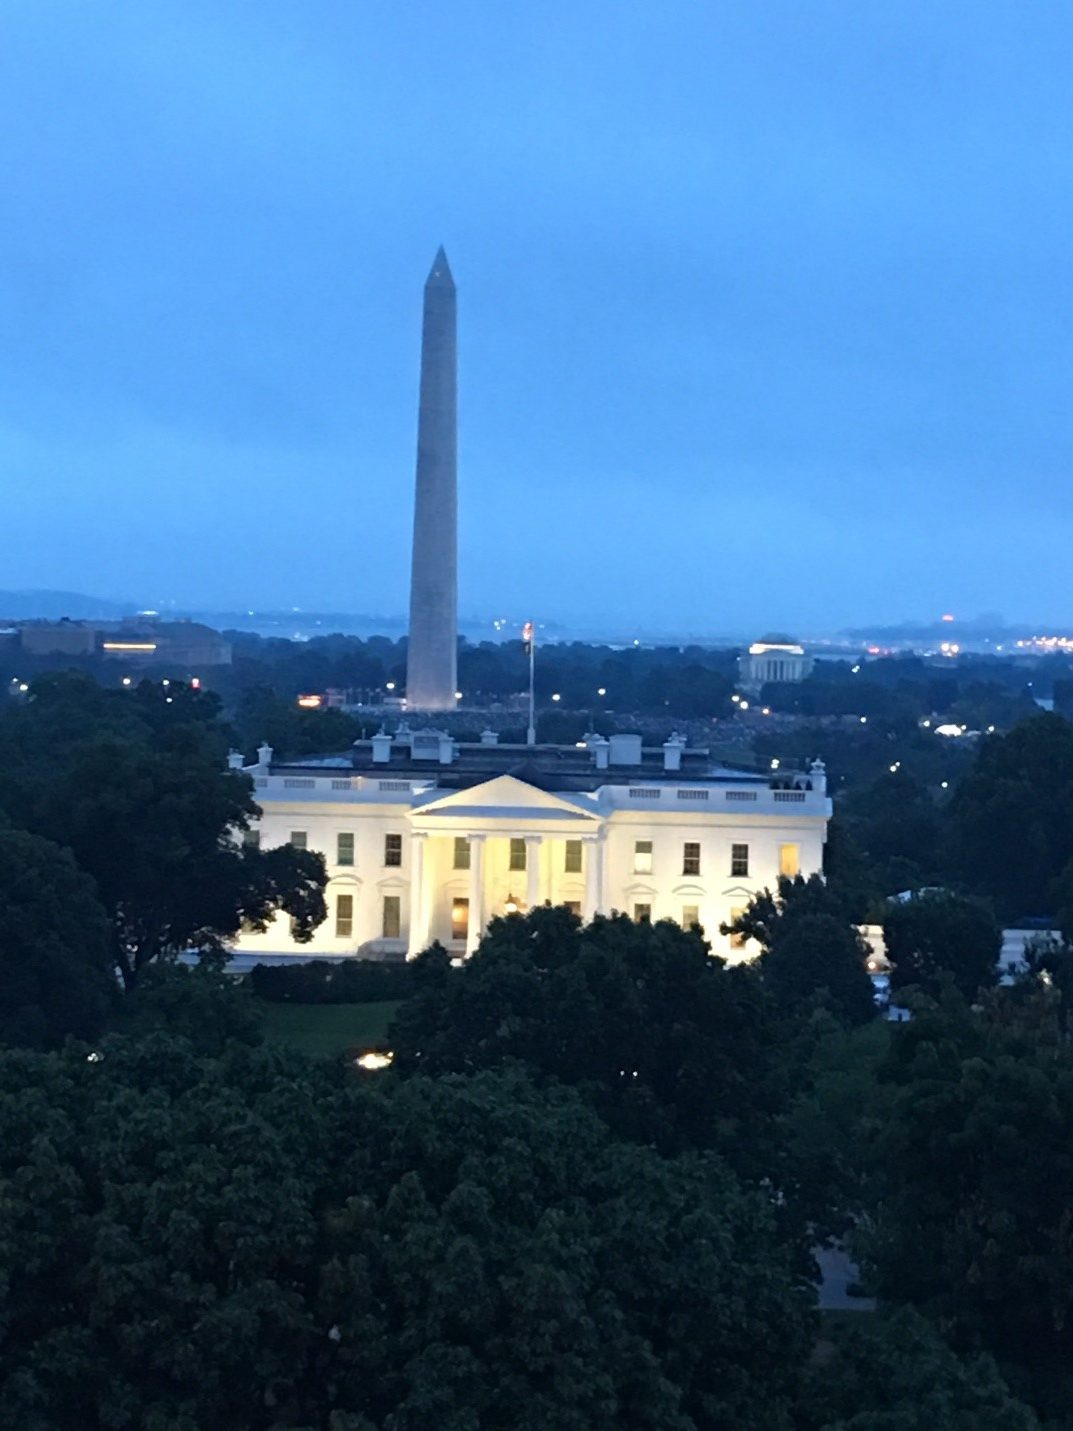 View from the Hay-Adams Hotel